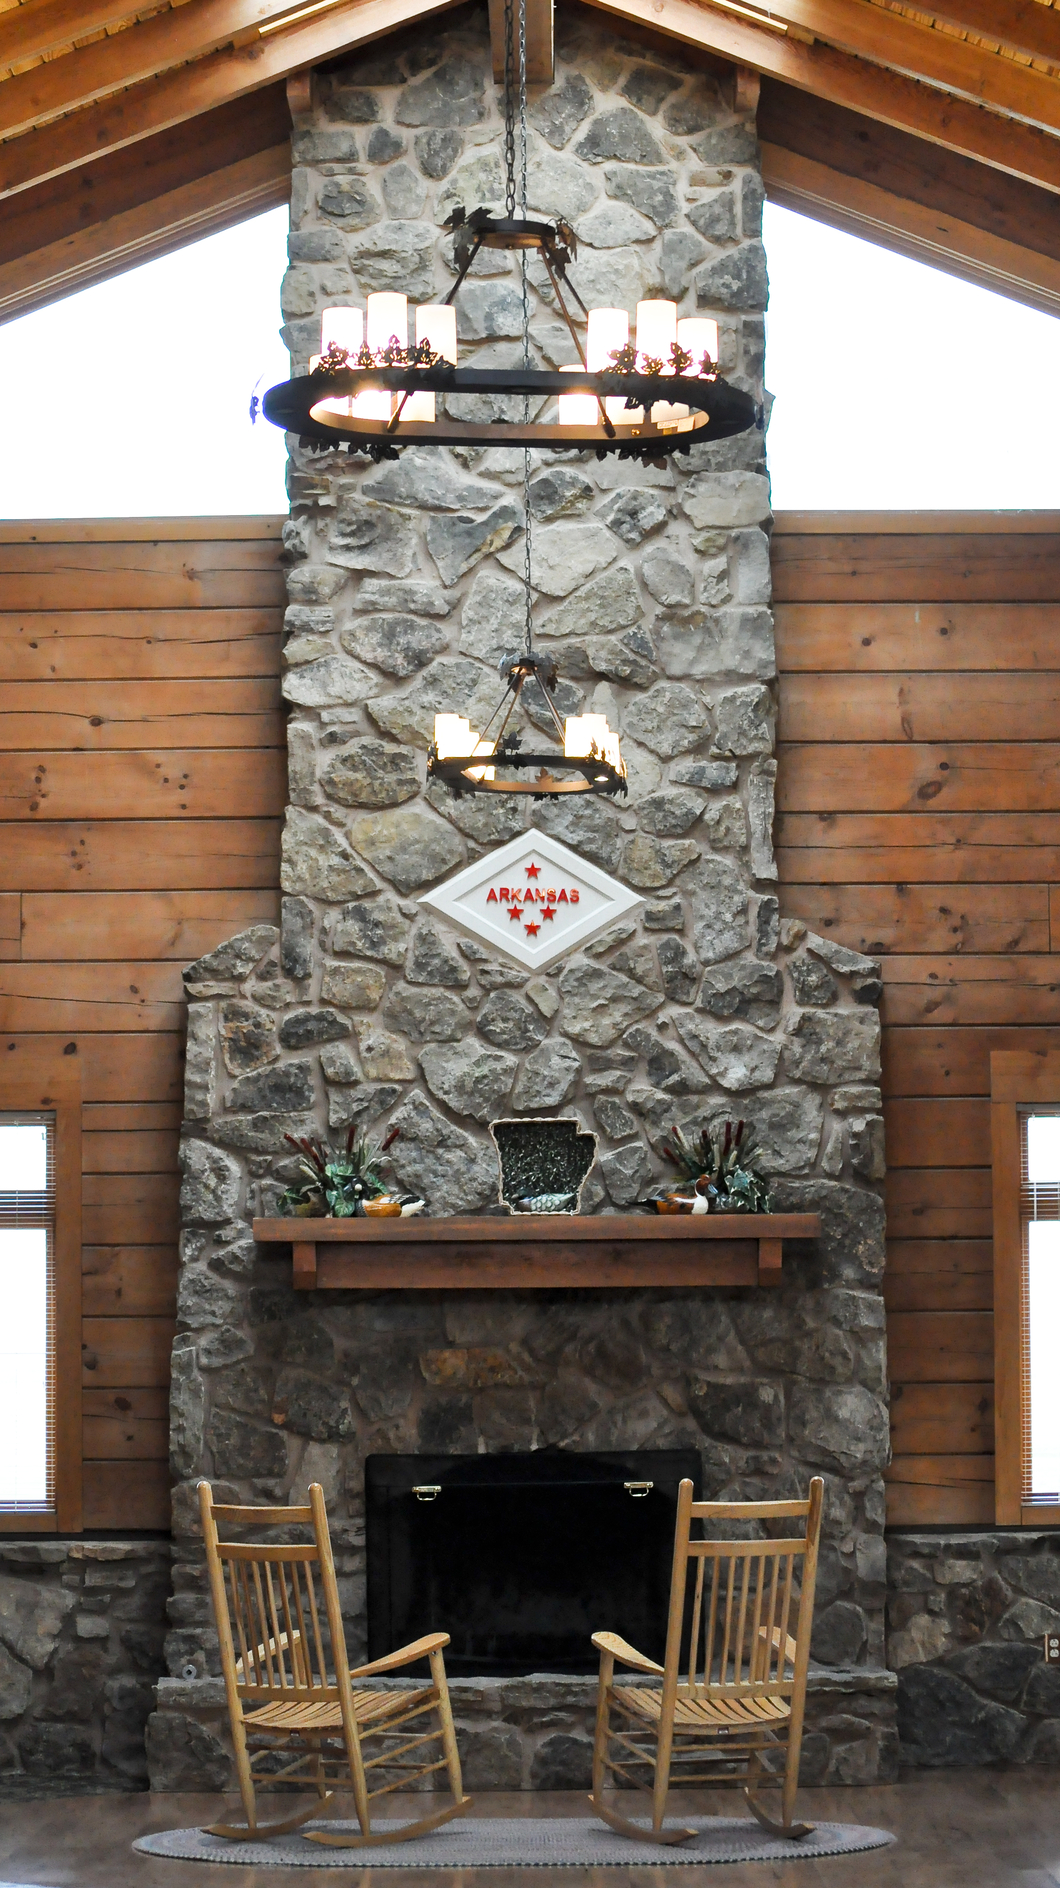 Granite Places Near Me : Concrete walls are offset by the white of the clean fireplace surround ...